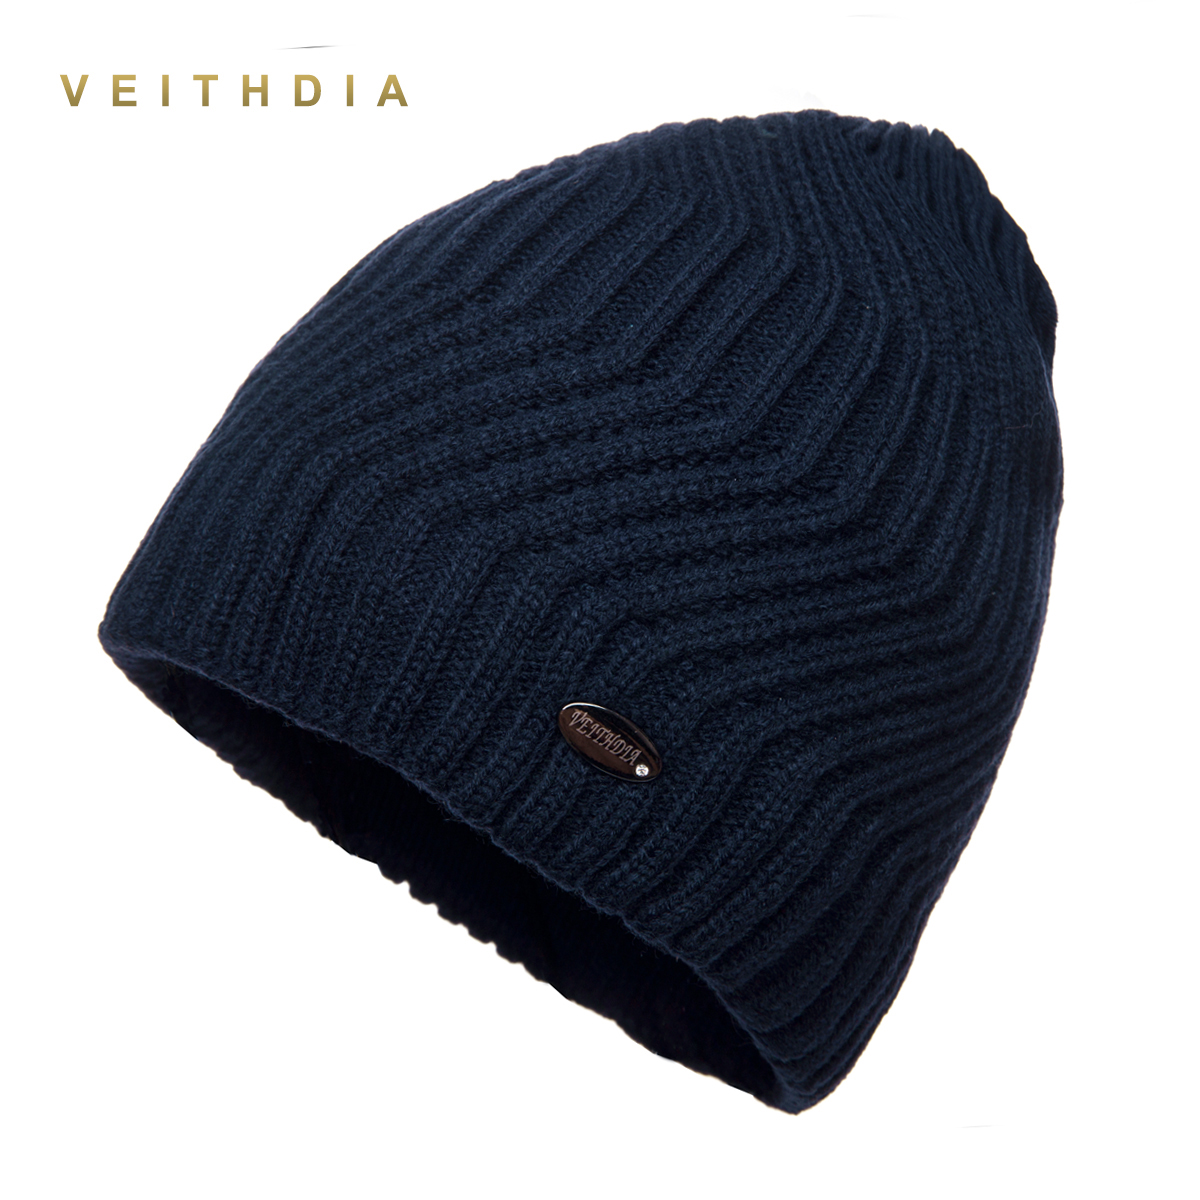 VEITHDIA Men Winter Hat   Skullies   Hats   beanies   Knitted plus velvet Patchwork Color Cap Men's Hat Gorro cap Thicken warm